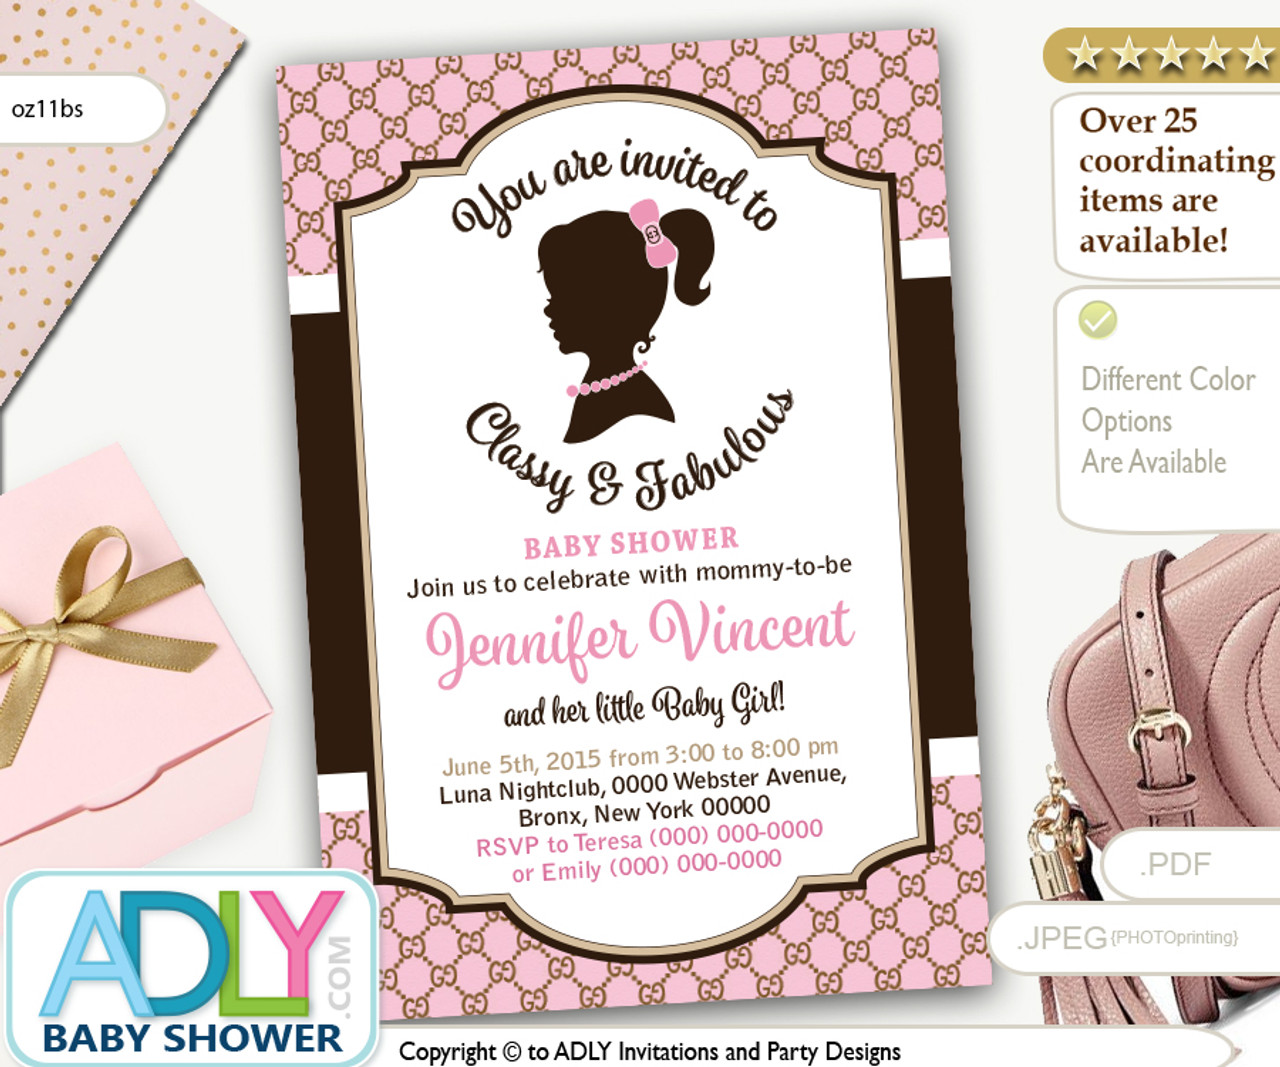 Vintage Classy And Fabulous Gucci Inspired Baby Shower Invitation Pink Brown Retro